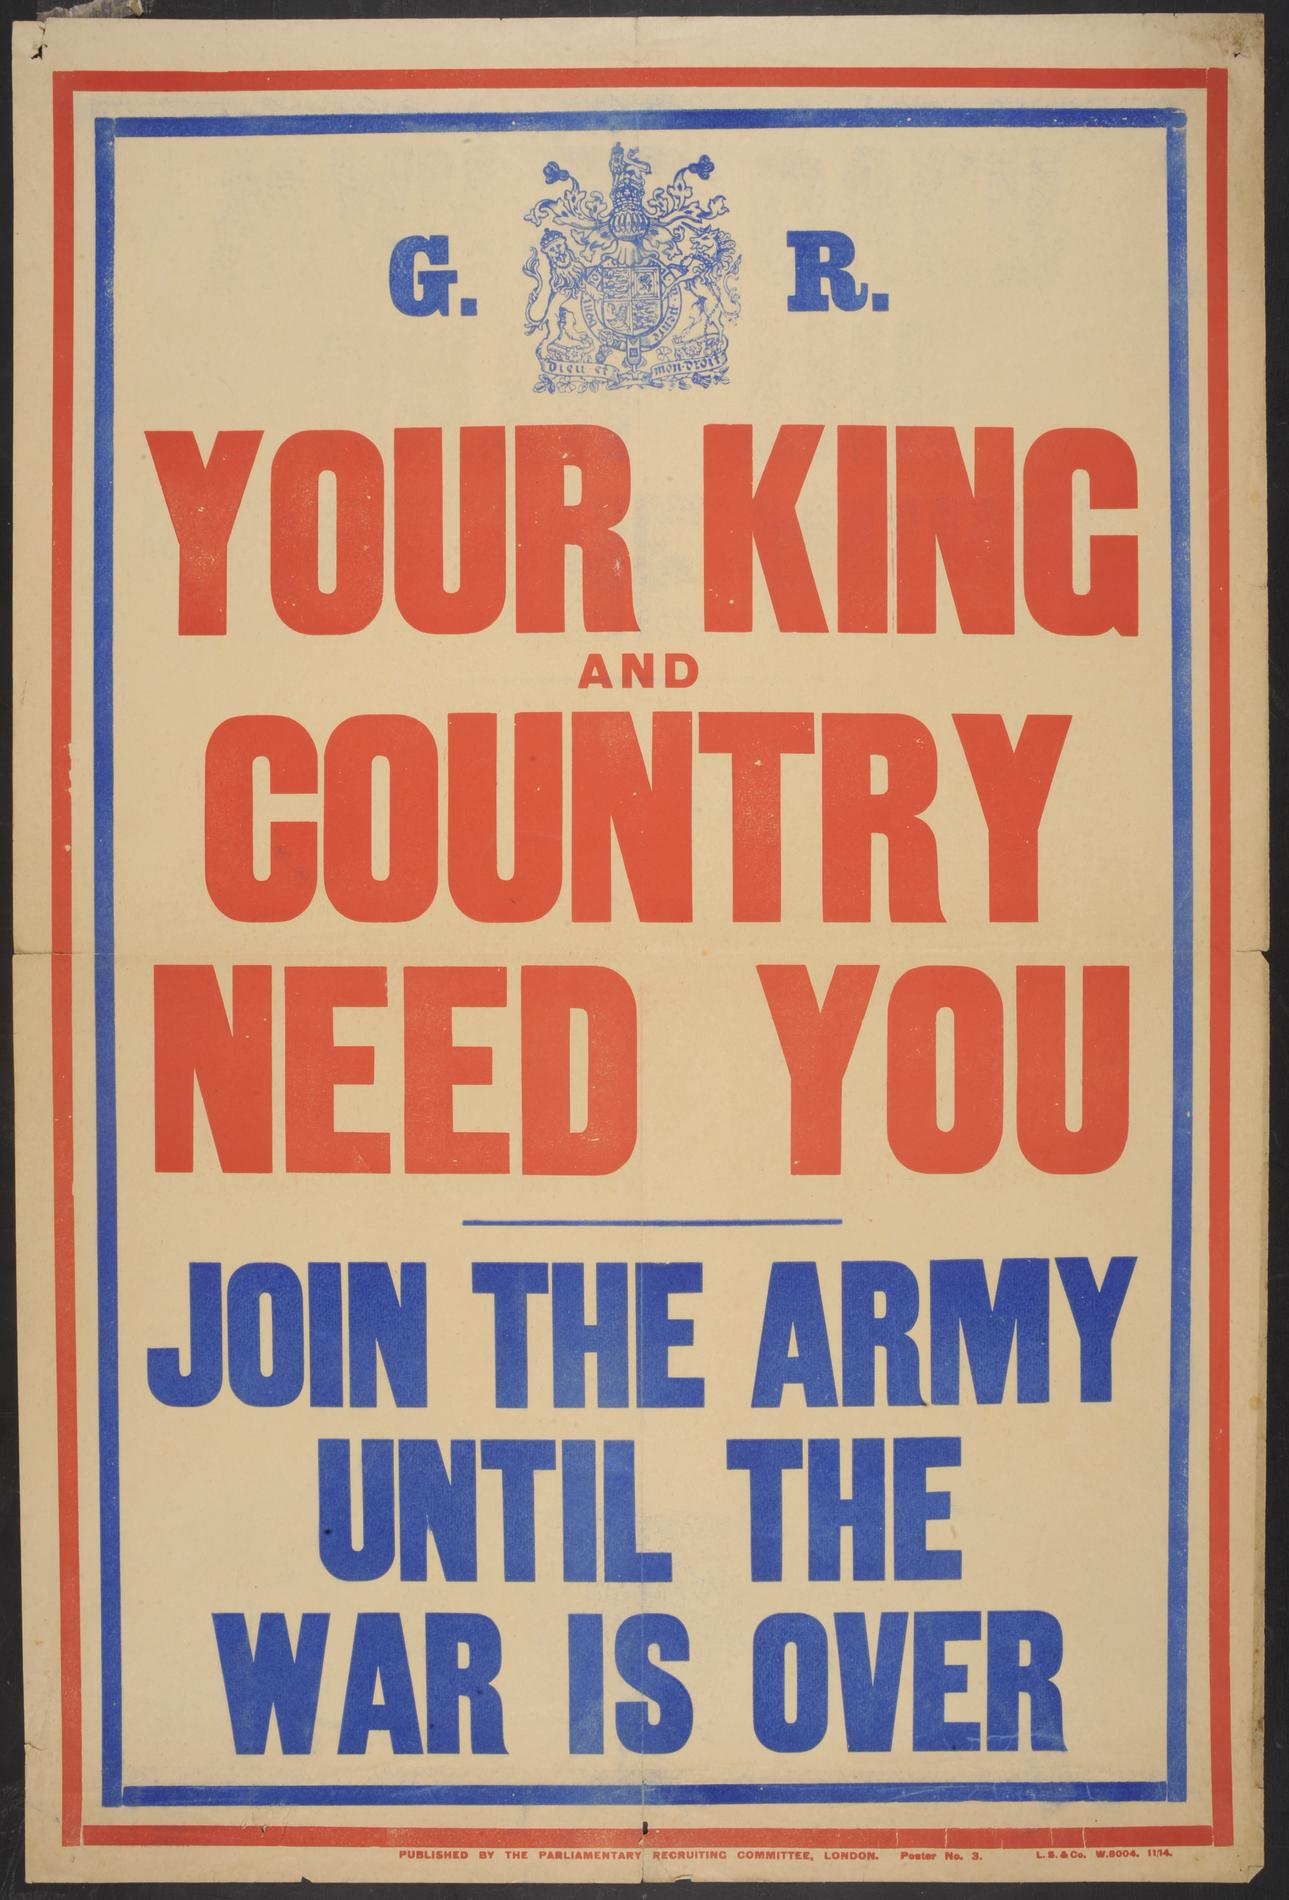 'Your King and Country Need You. Join the Army Until the War is Over' (Poster)